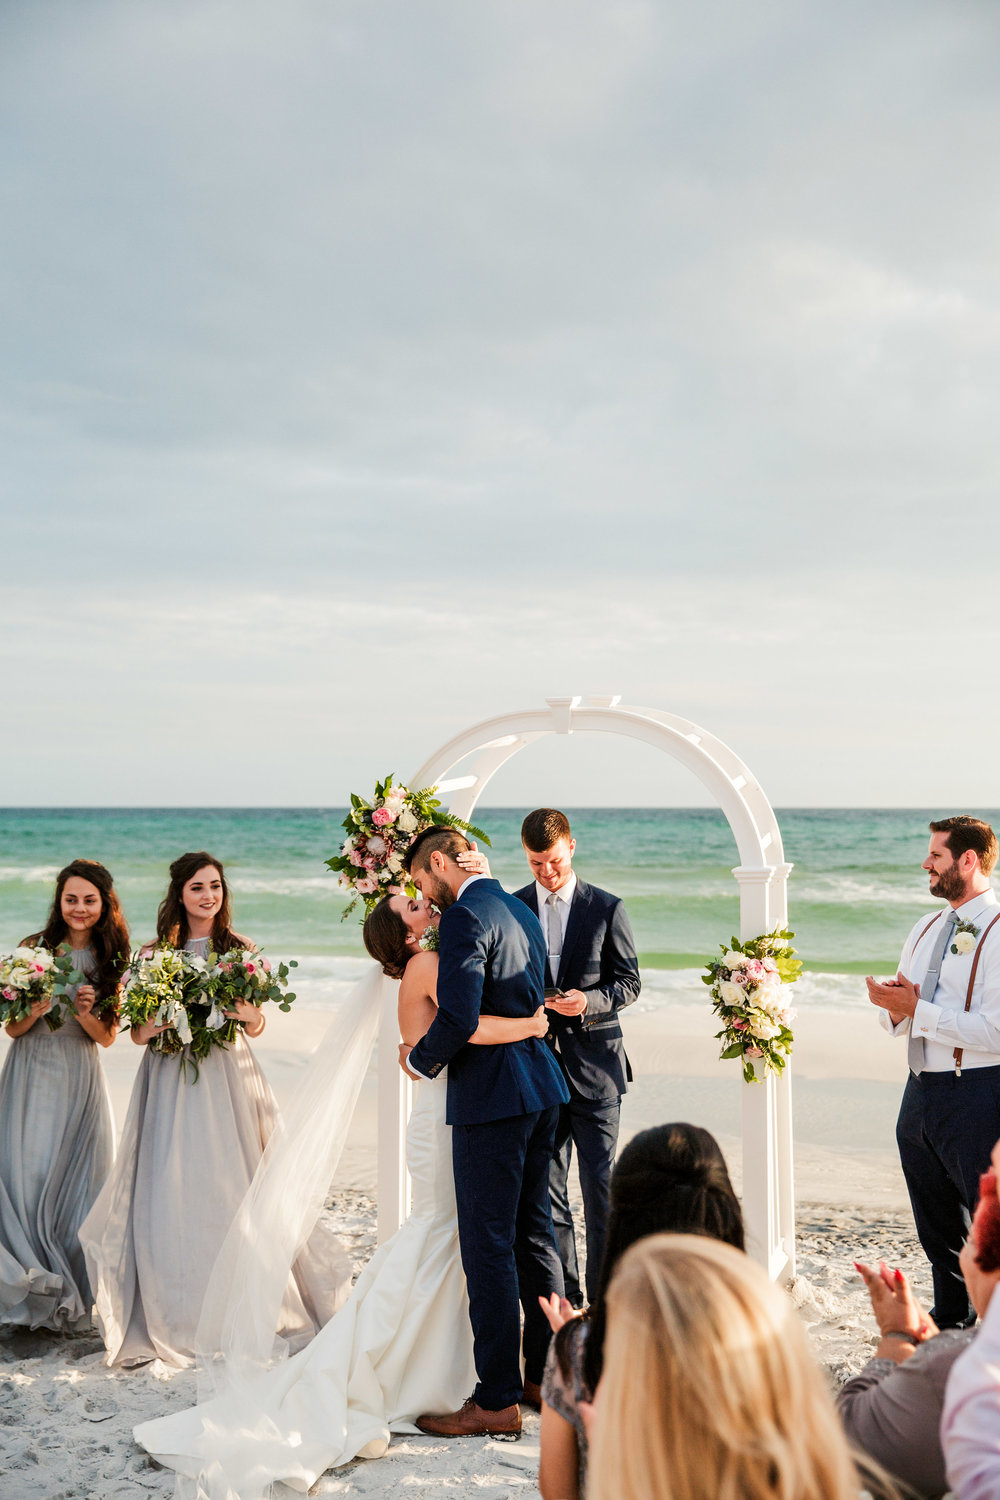 Santa Rosa Beach Wedding28.jpg